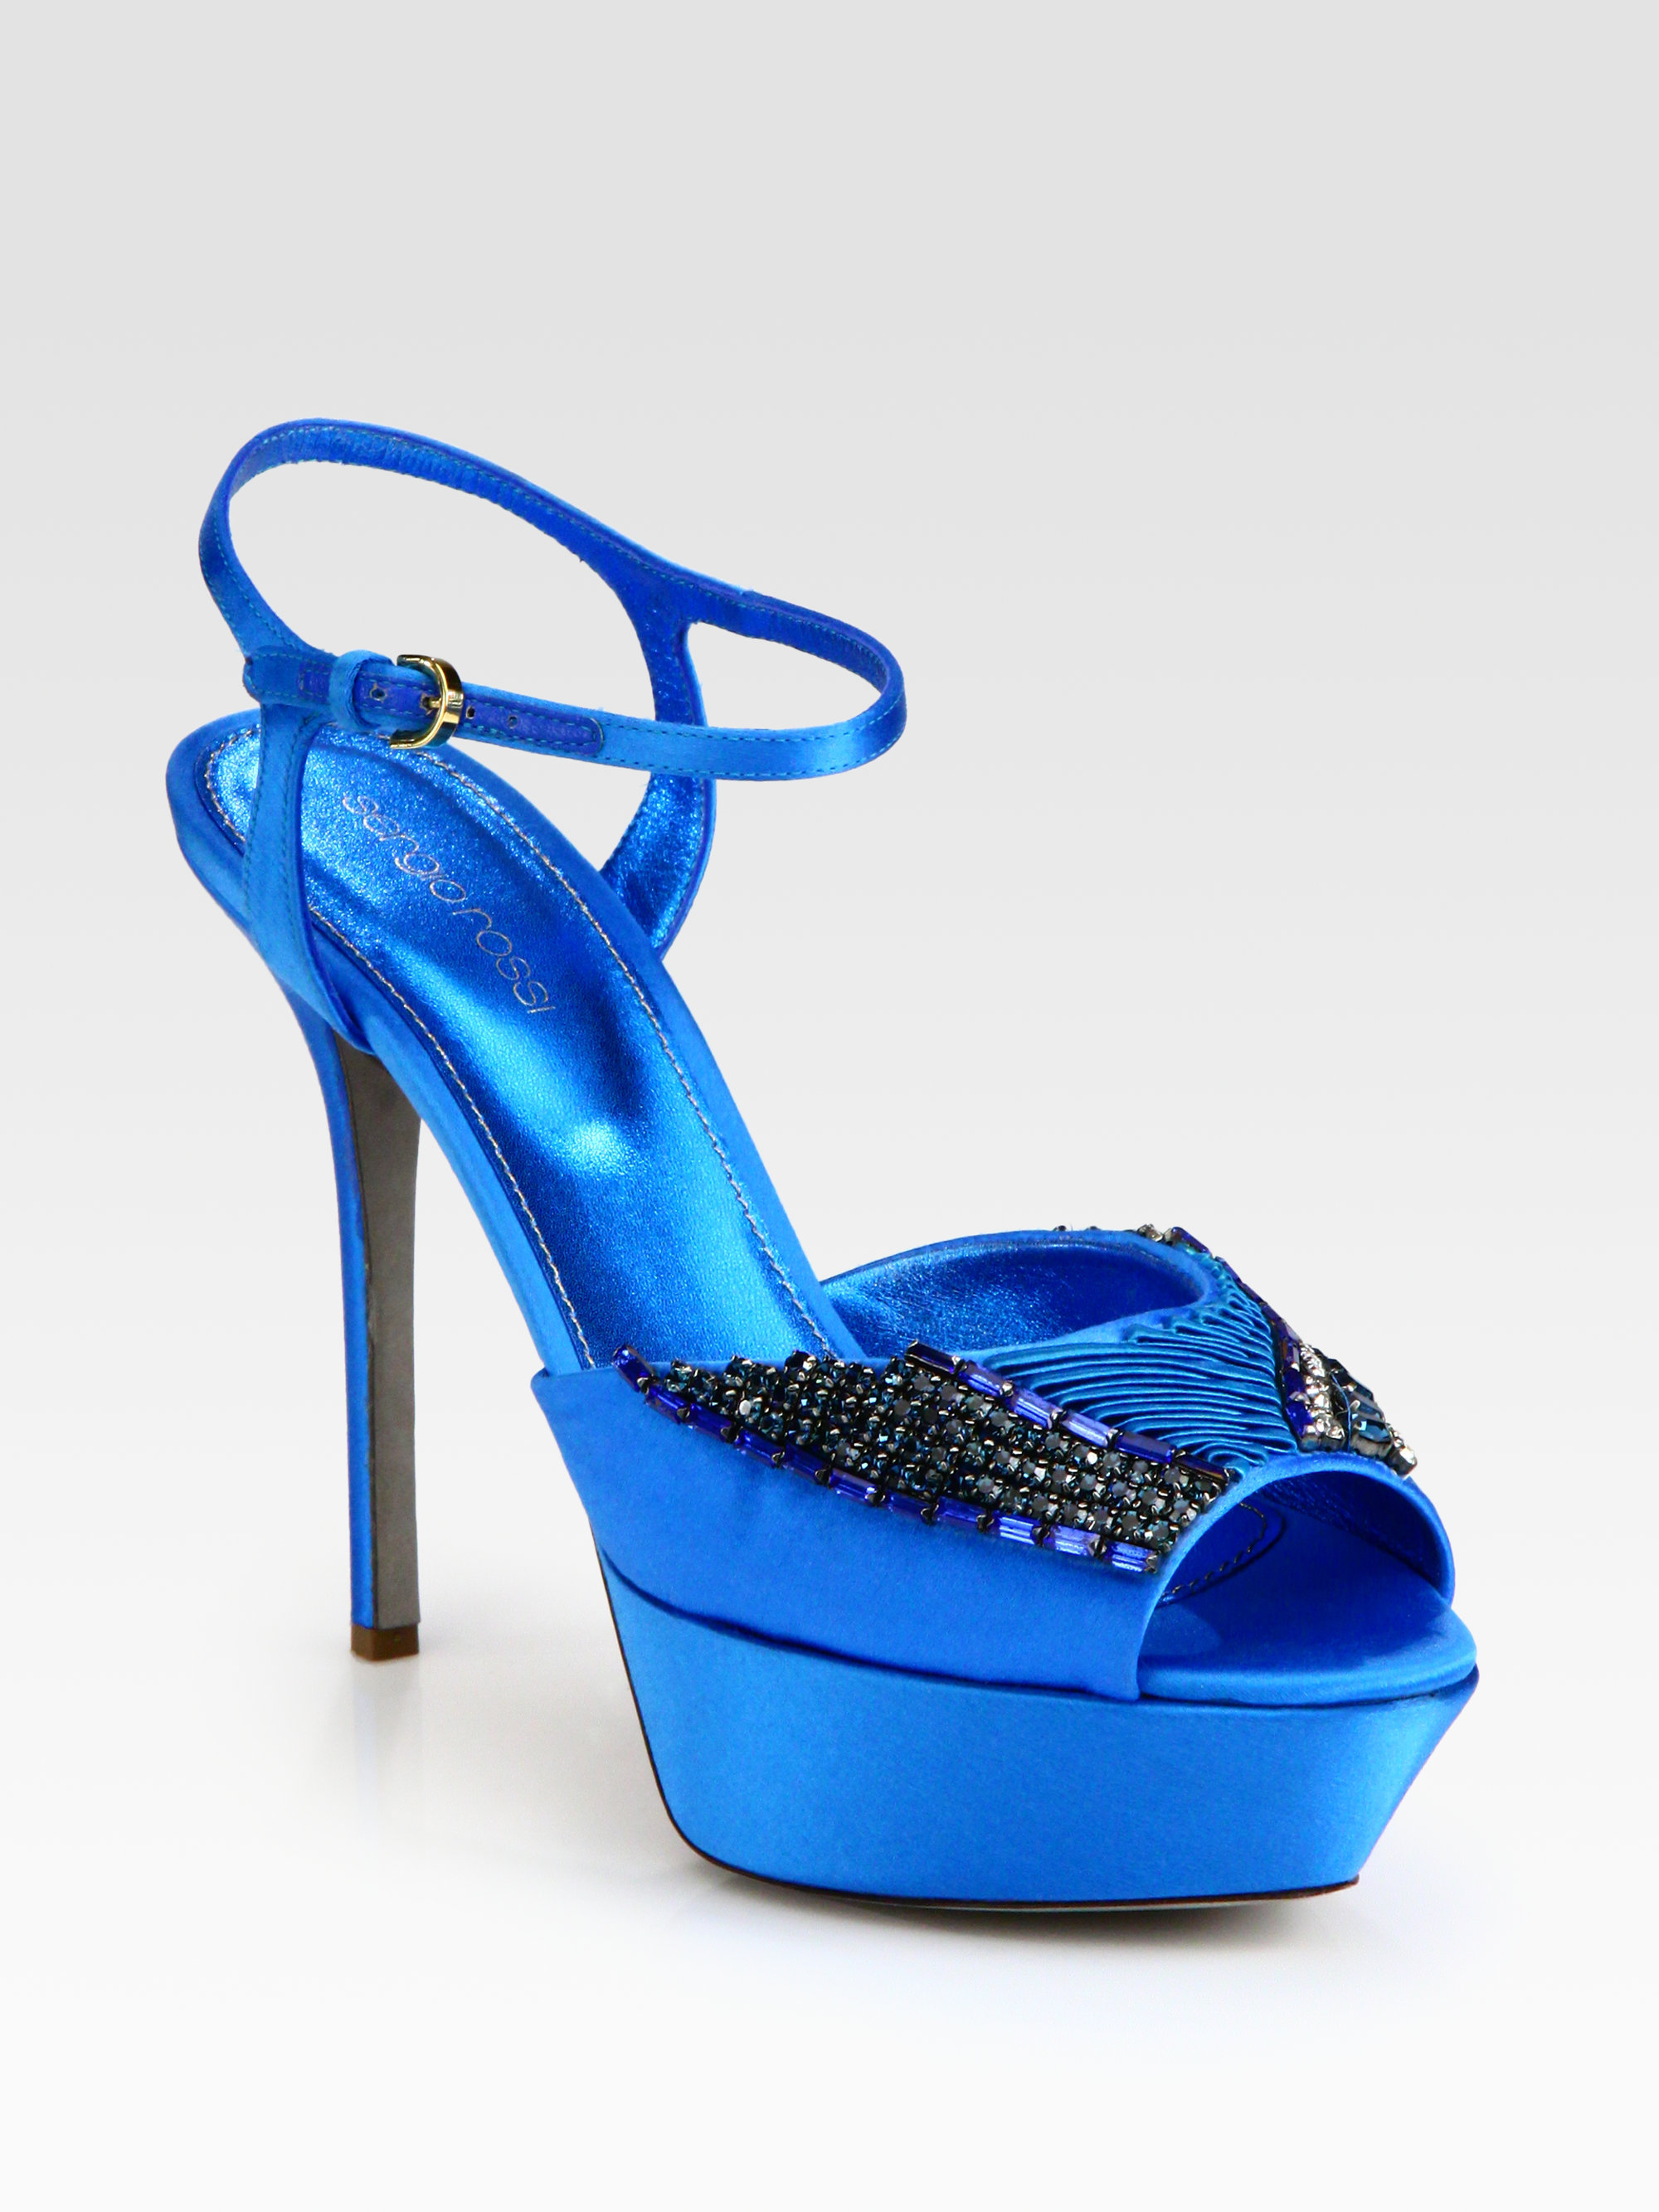 sergio rossi embellished satin platform sandals in blue lyst. Black Bedroom Furniture Sets. Home Design Ideas